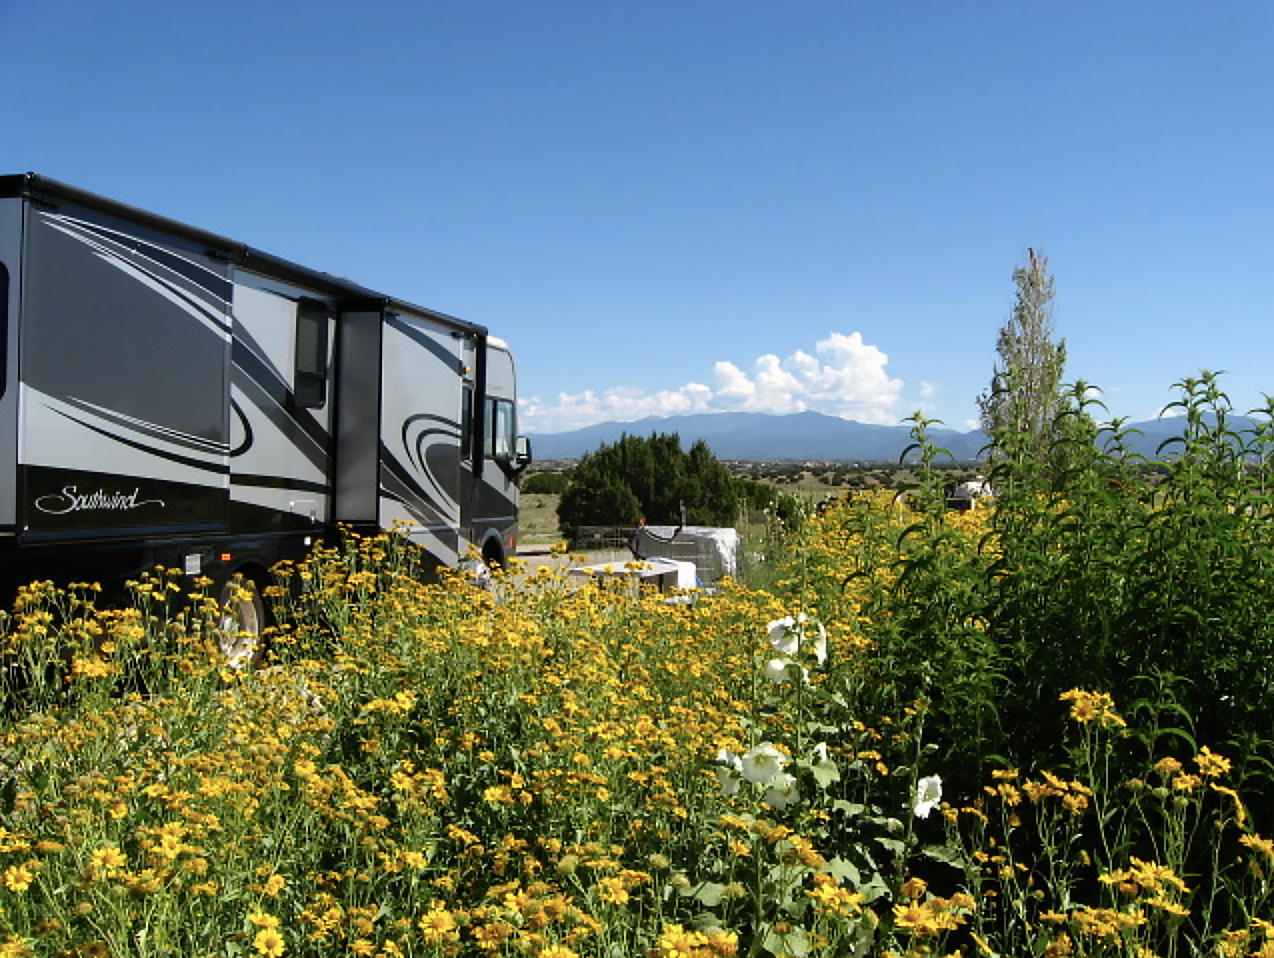 A field of flowers foregrounds a Southwind motorhome on the left side of the frame; hills and clouds form the horizon on the right.